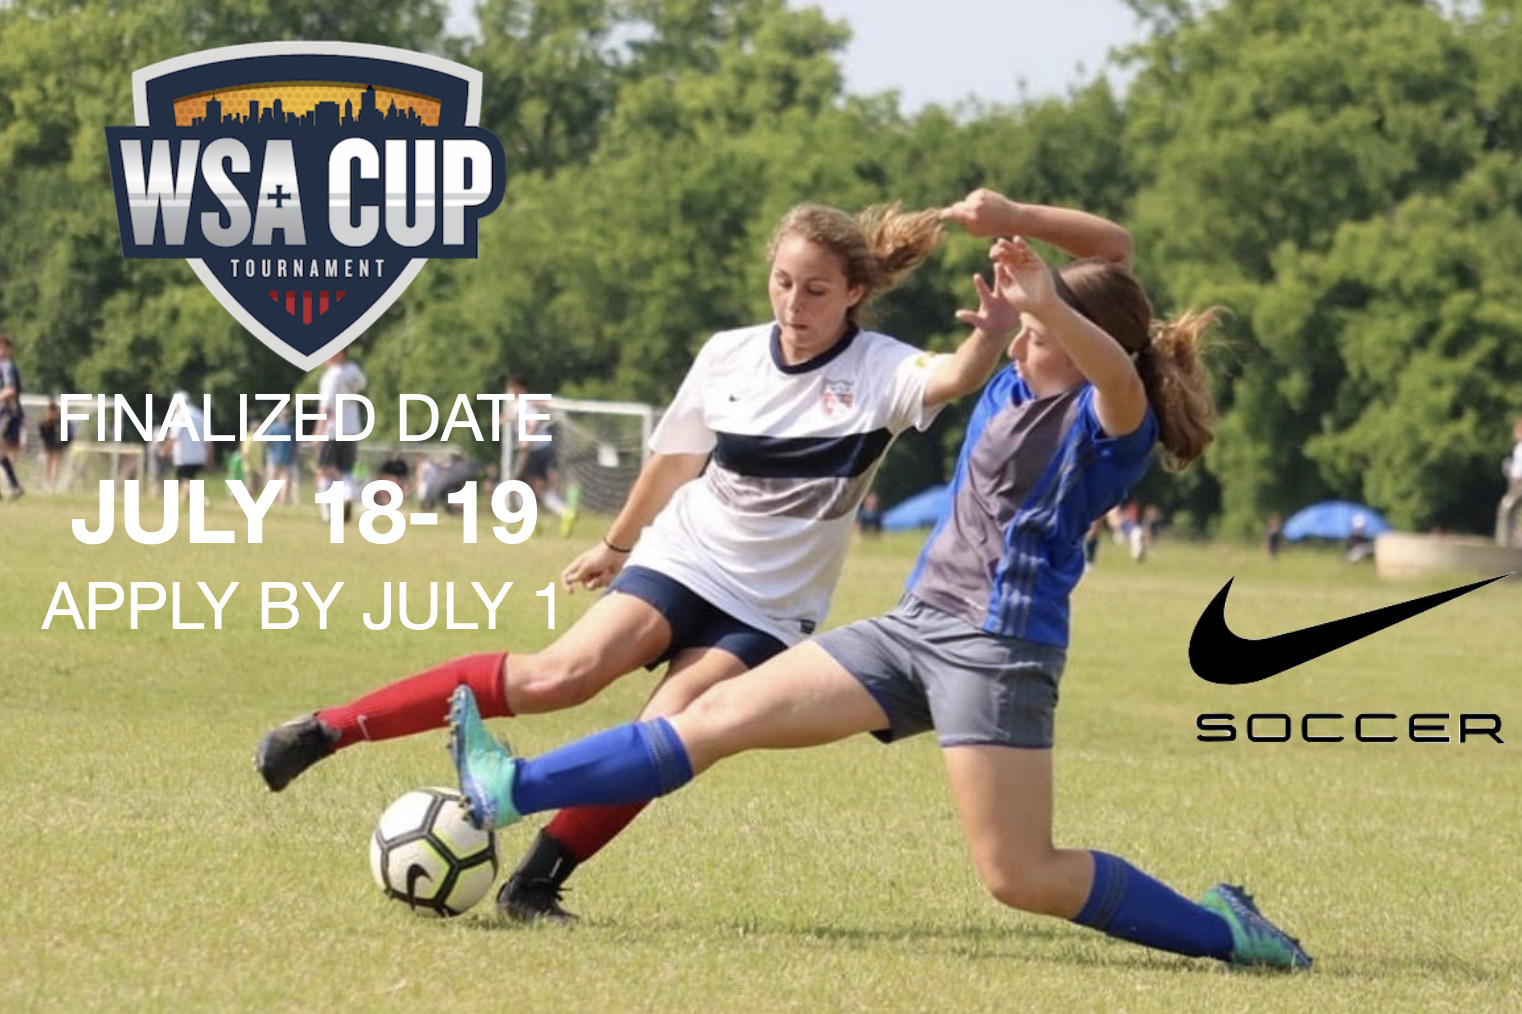 SCHEDULE RELEASE!  2020 WSA CUP,  JULY 17-19